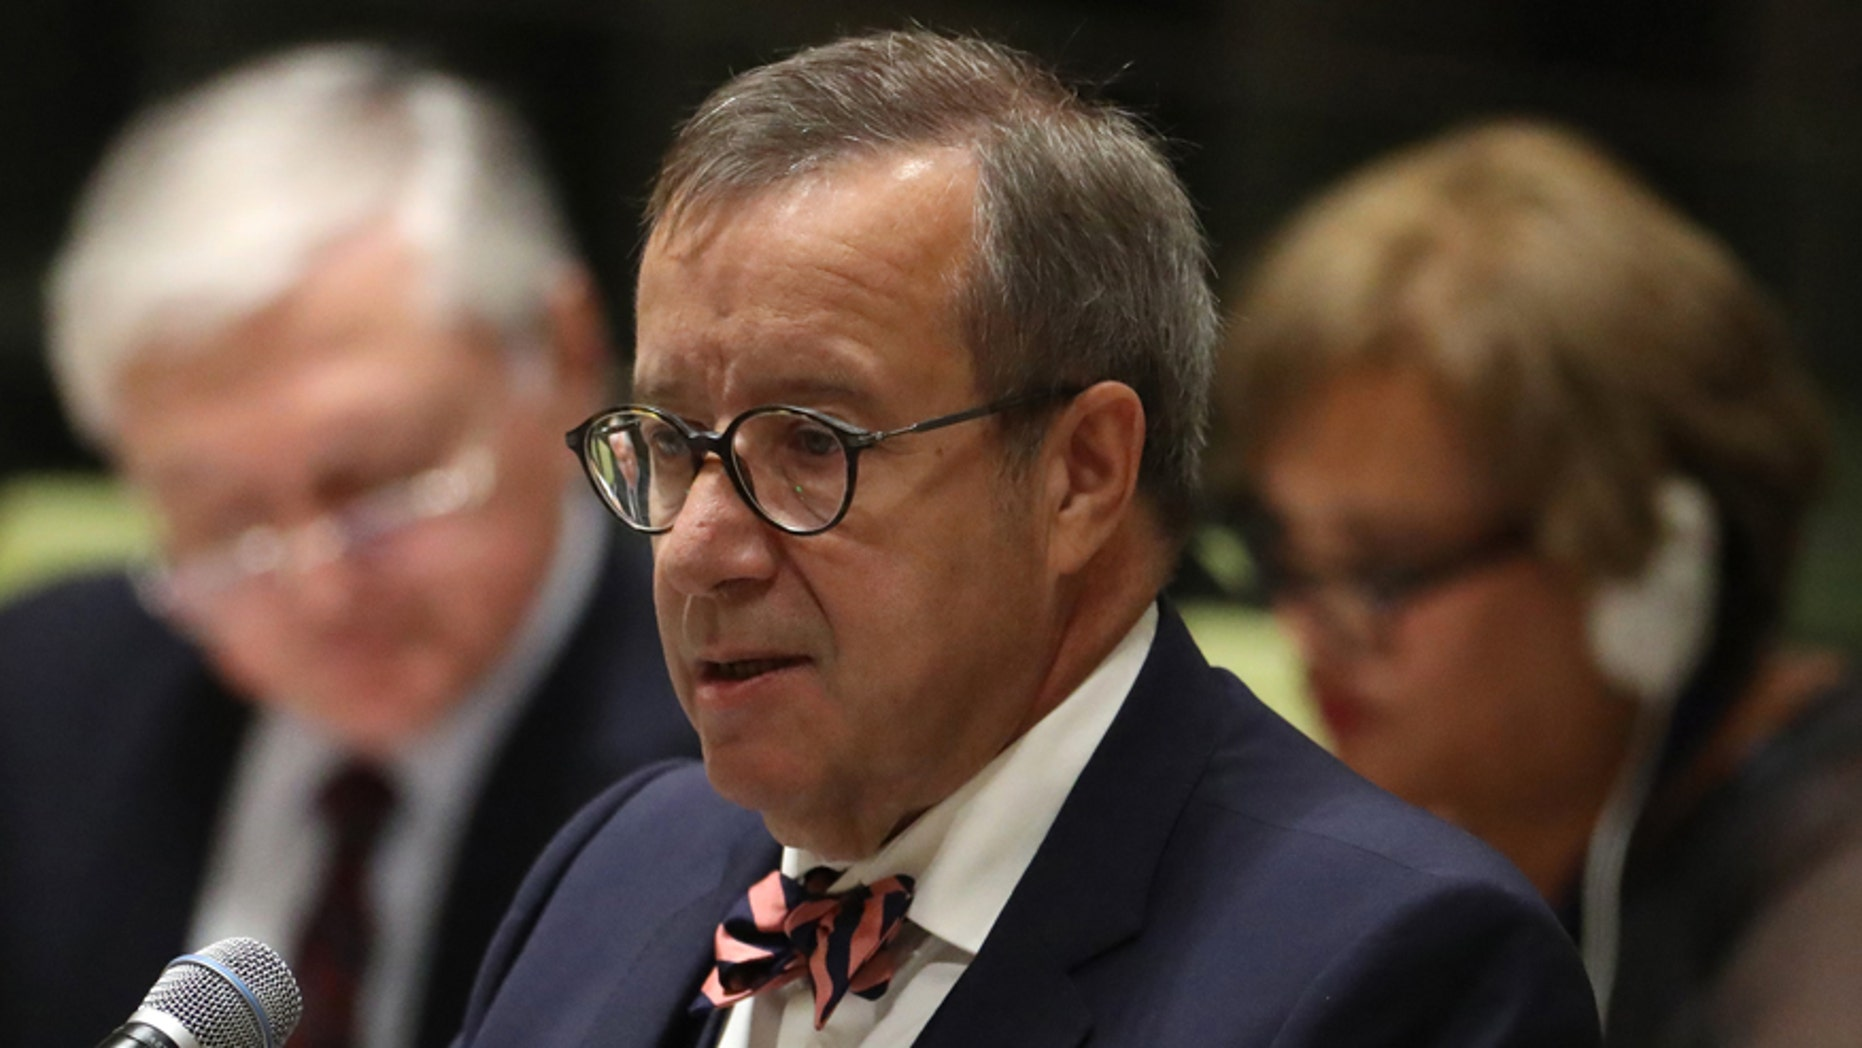 President Toomas Hendrik Ilves of Estonia speaks during a high-level meeting on addressing large movements of refugees and migrants at the United Nations General Assembly in Manhattan, New York, U.S. September 19, 2016. REUTERS/Carlo Allegri - RTSOGAR